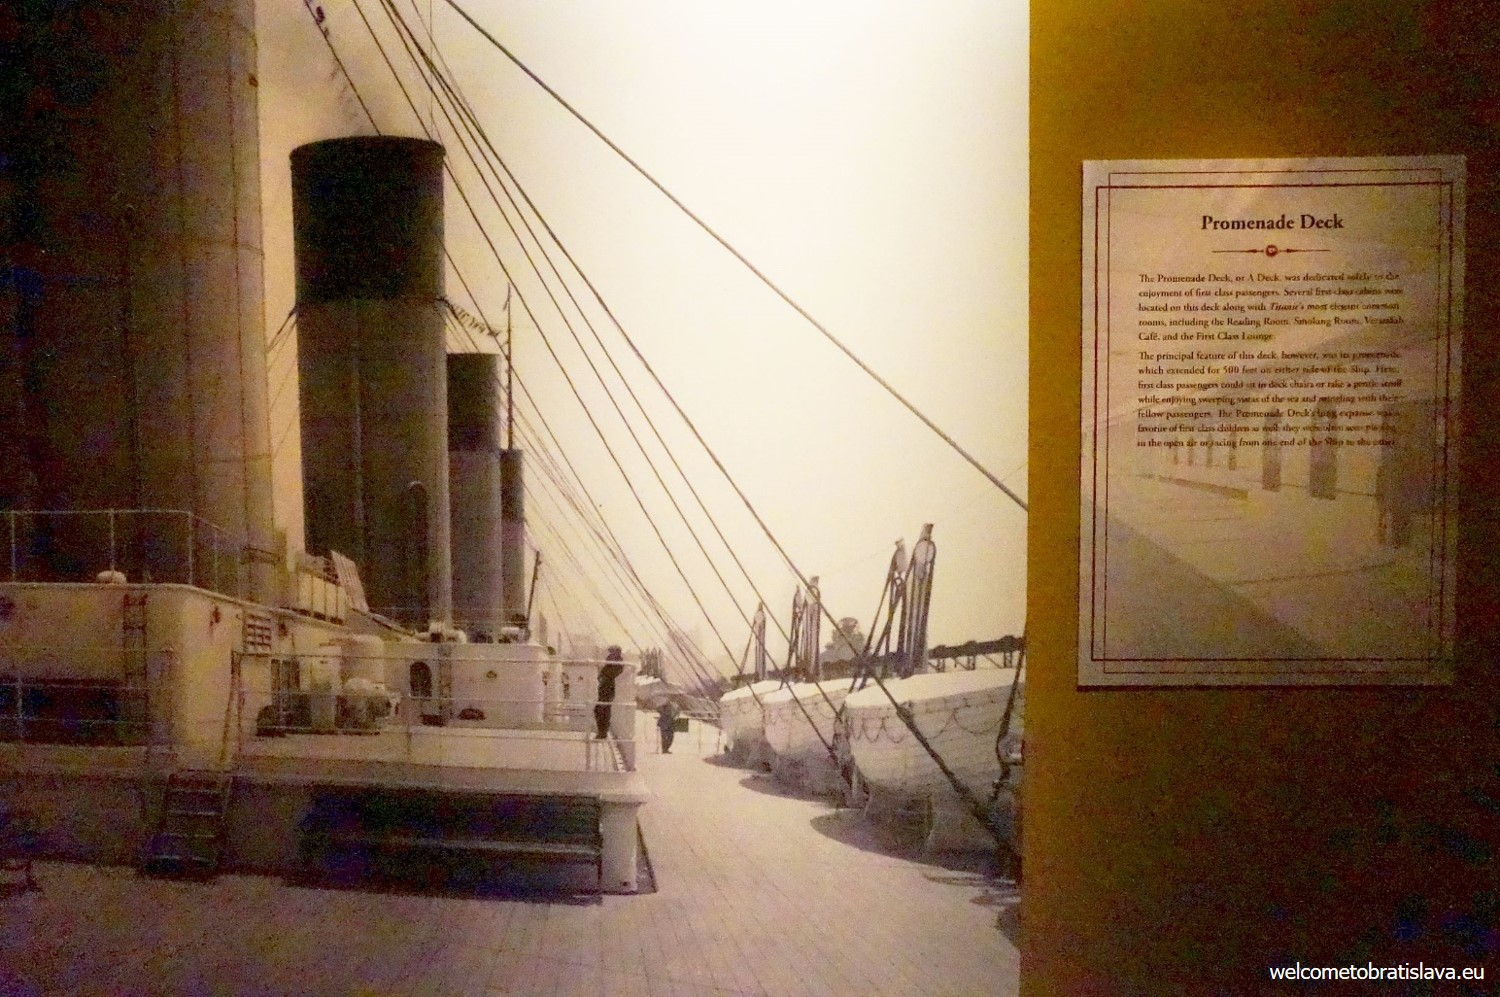 You'll see the old photos of the promenade deck, too